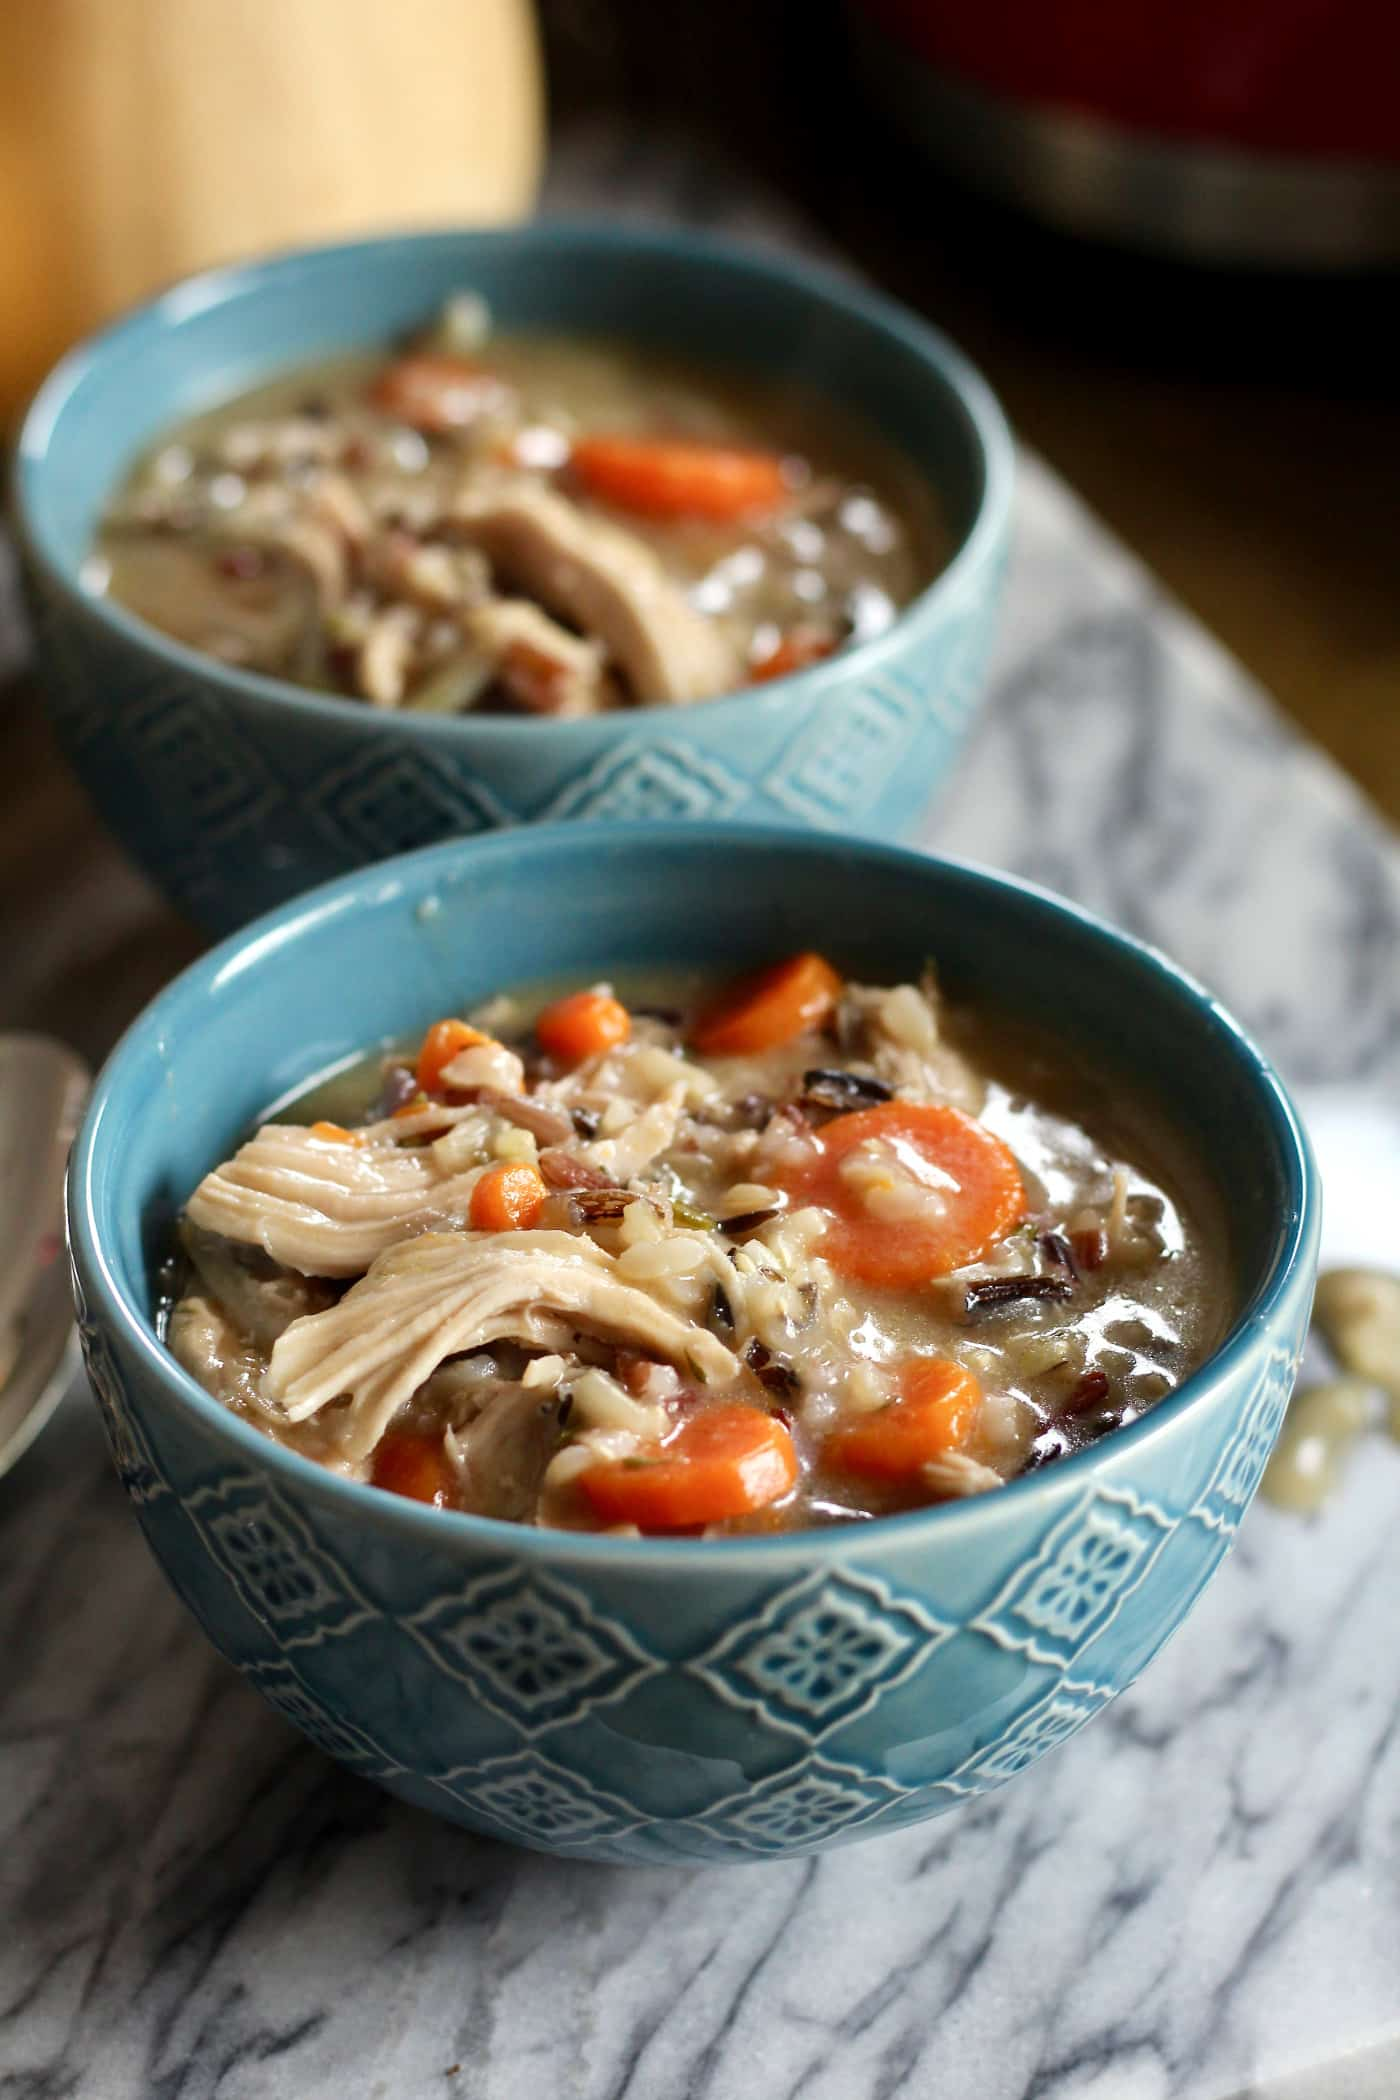 Healthy Wild Rice Soup Recipe with Leftover Turkey